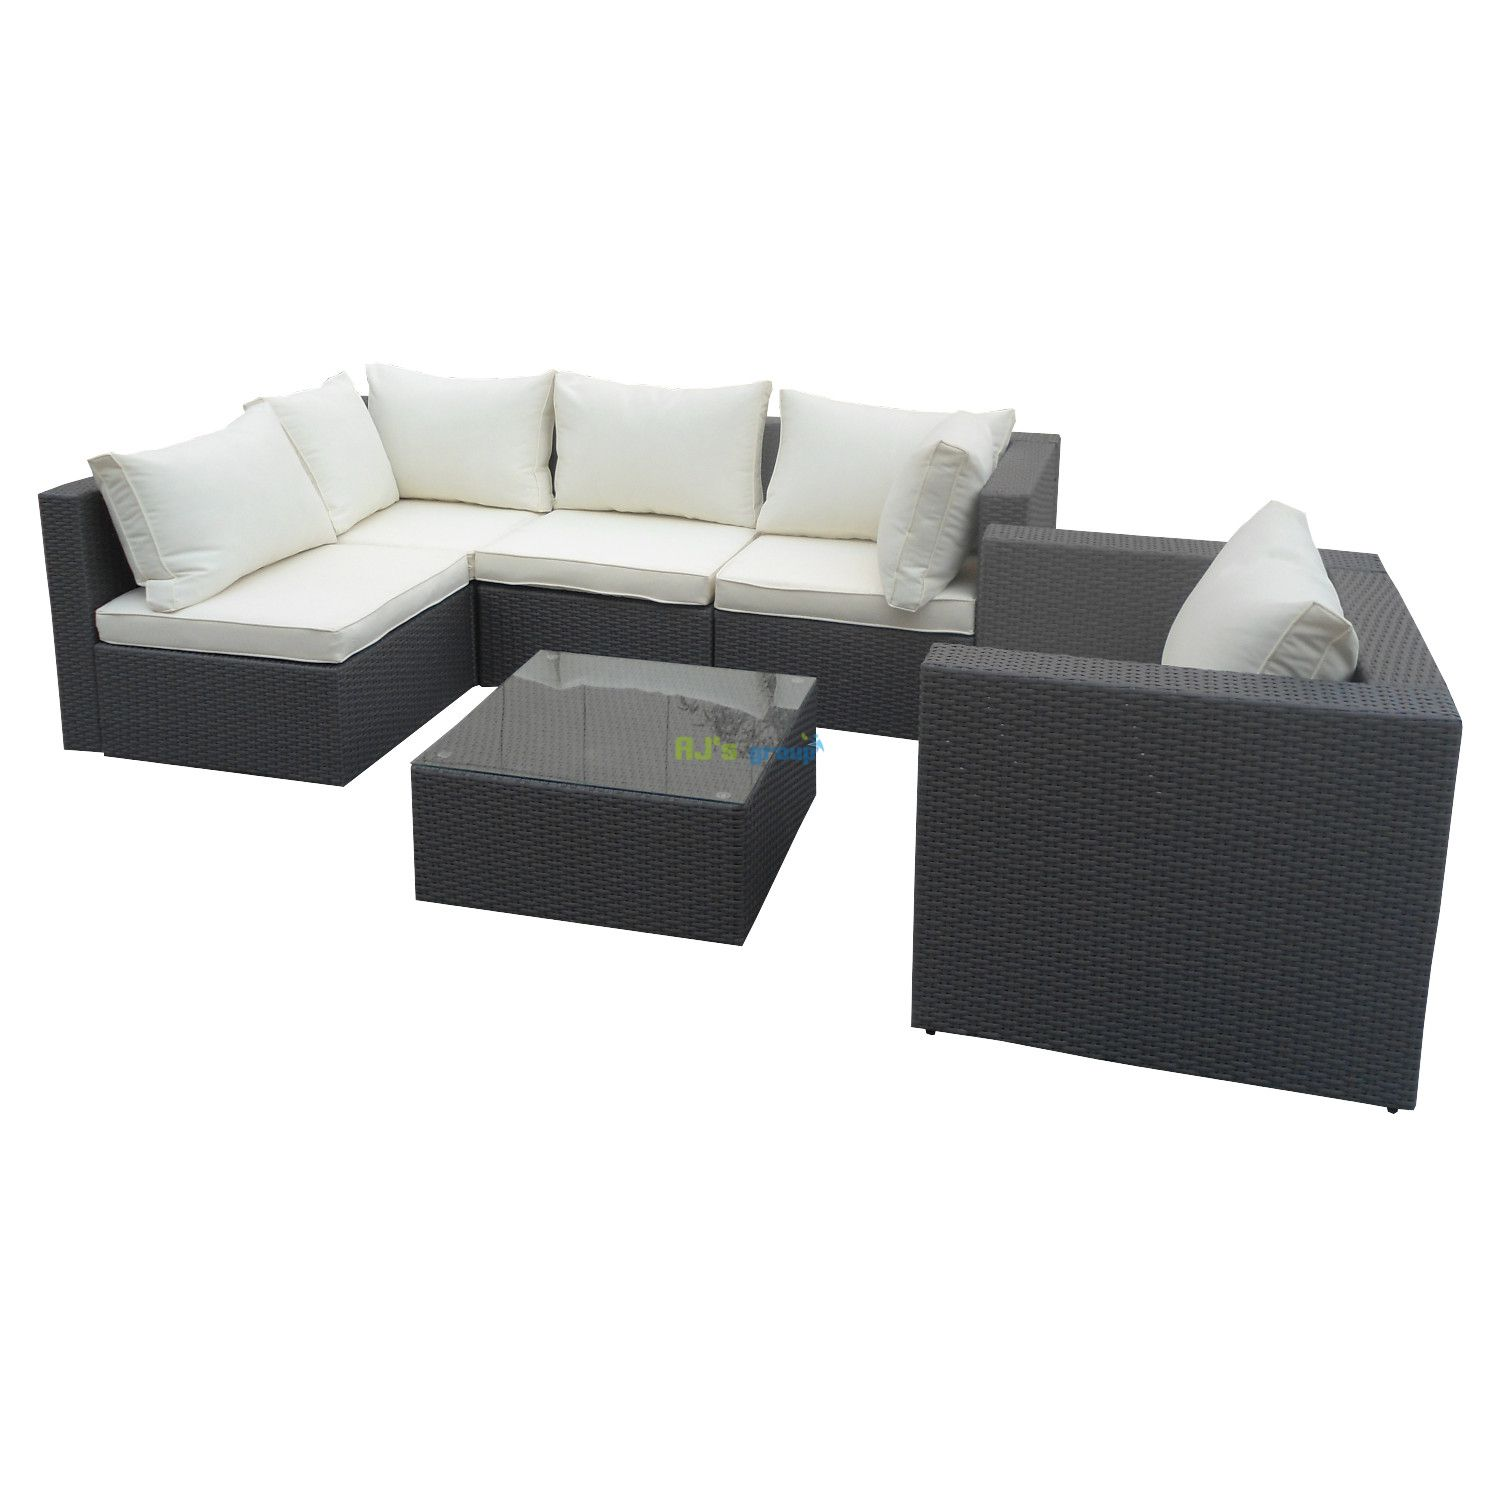 rattan wicker garden patio set jamaica mixed brown outdoor lounge furniture ebay. Black Bedroom Furniture Sets. Home Design Ideas